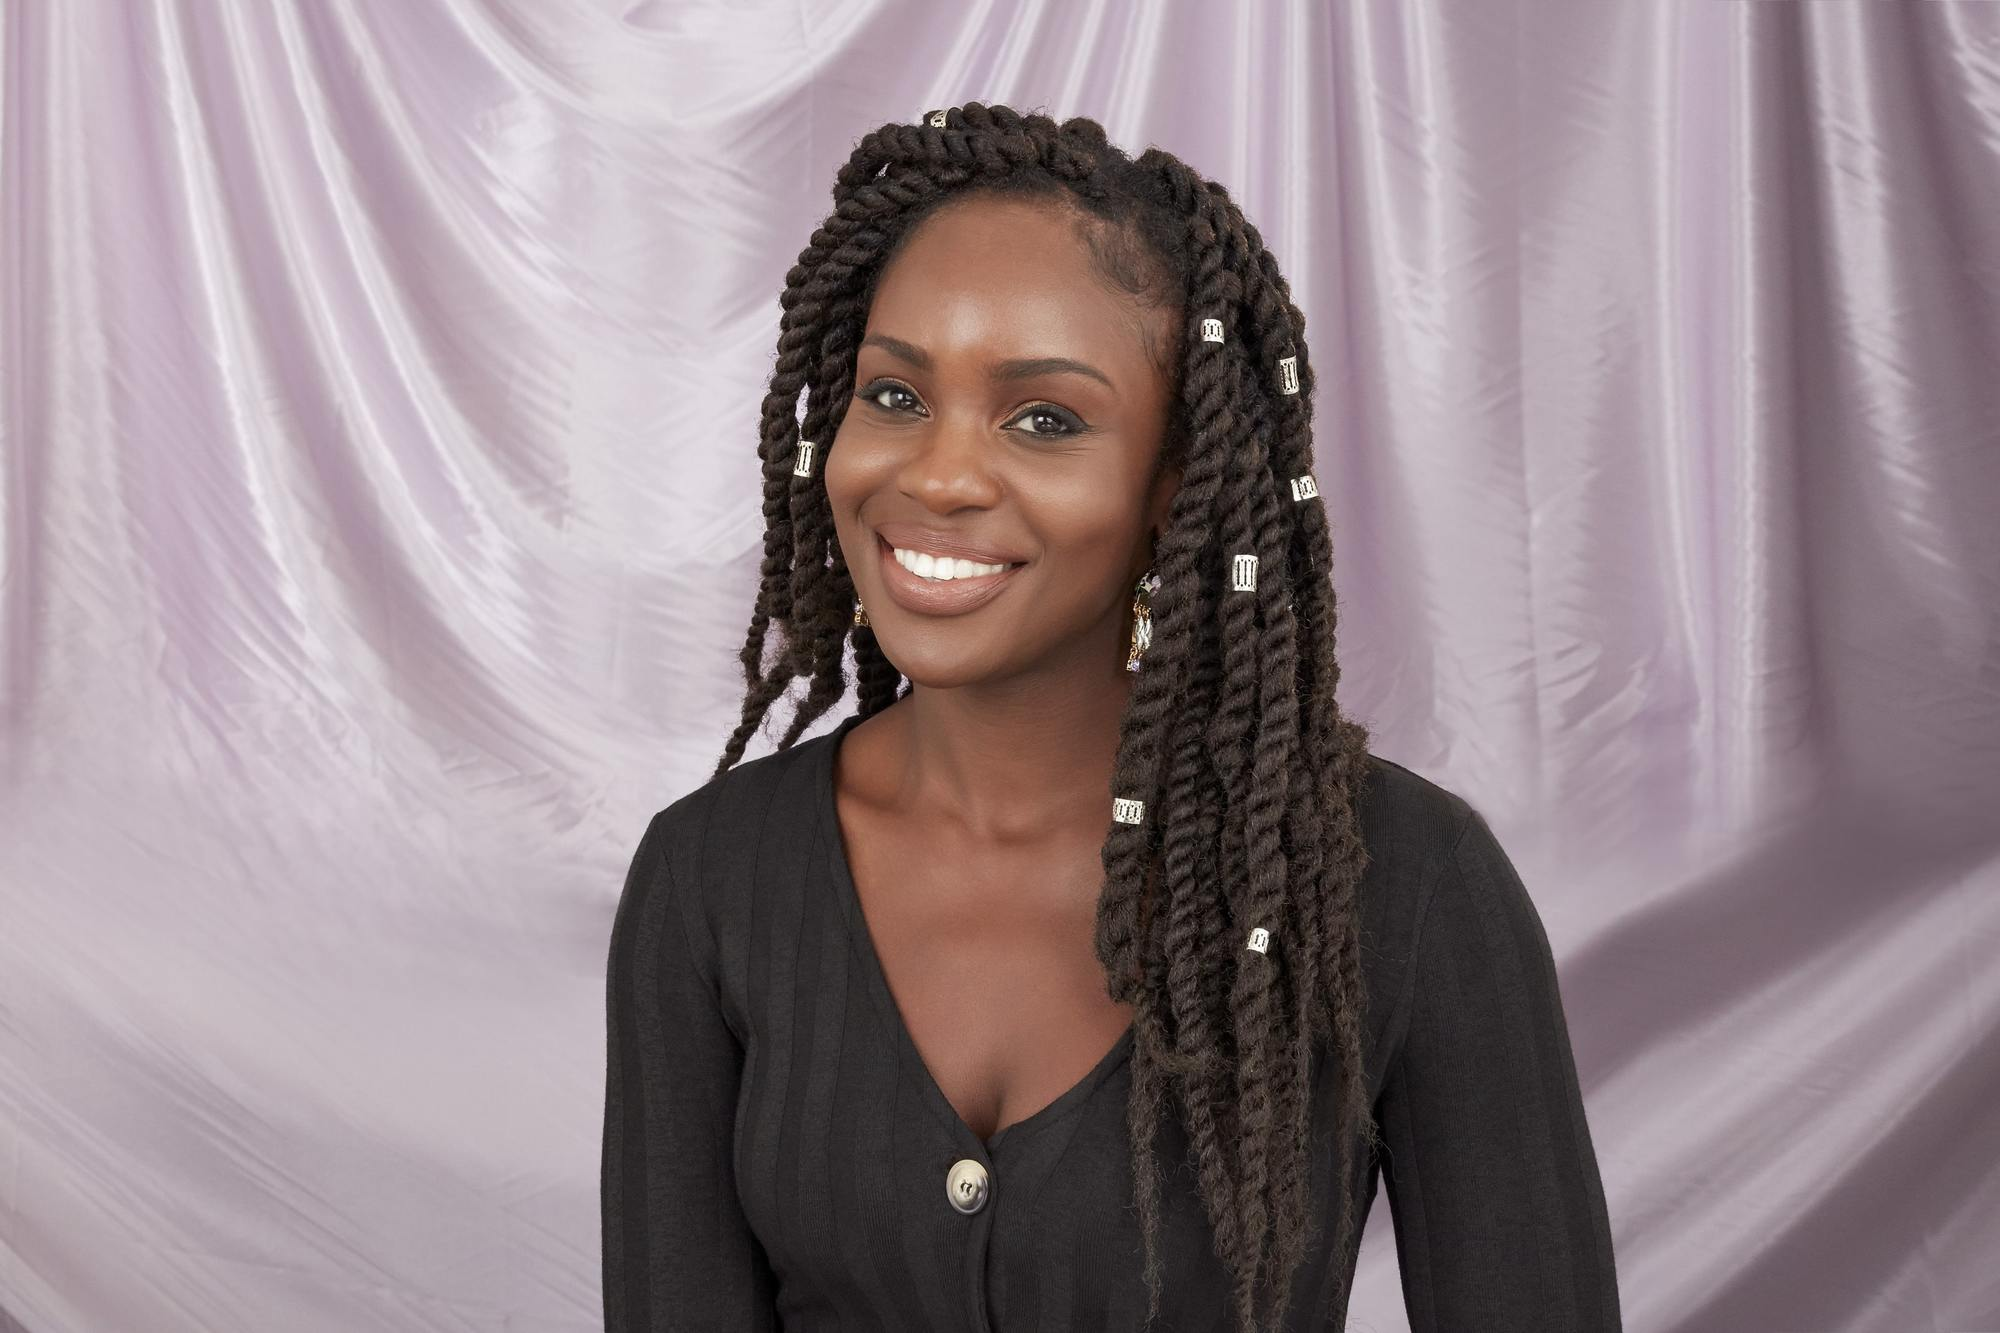 Making Hair Twist Yourself Using Marley Hair Twists